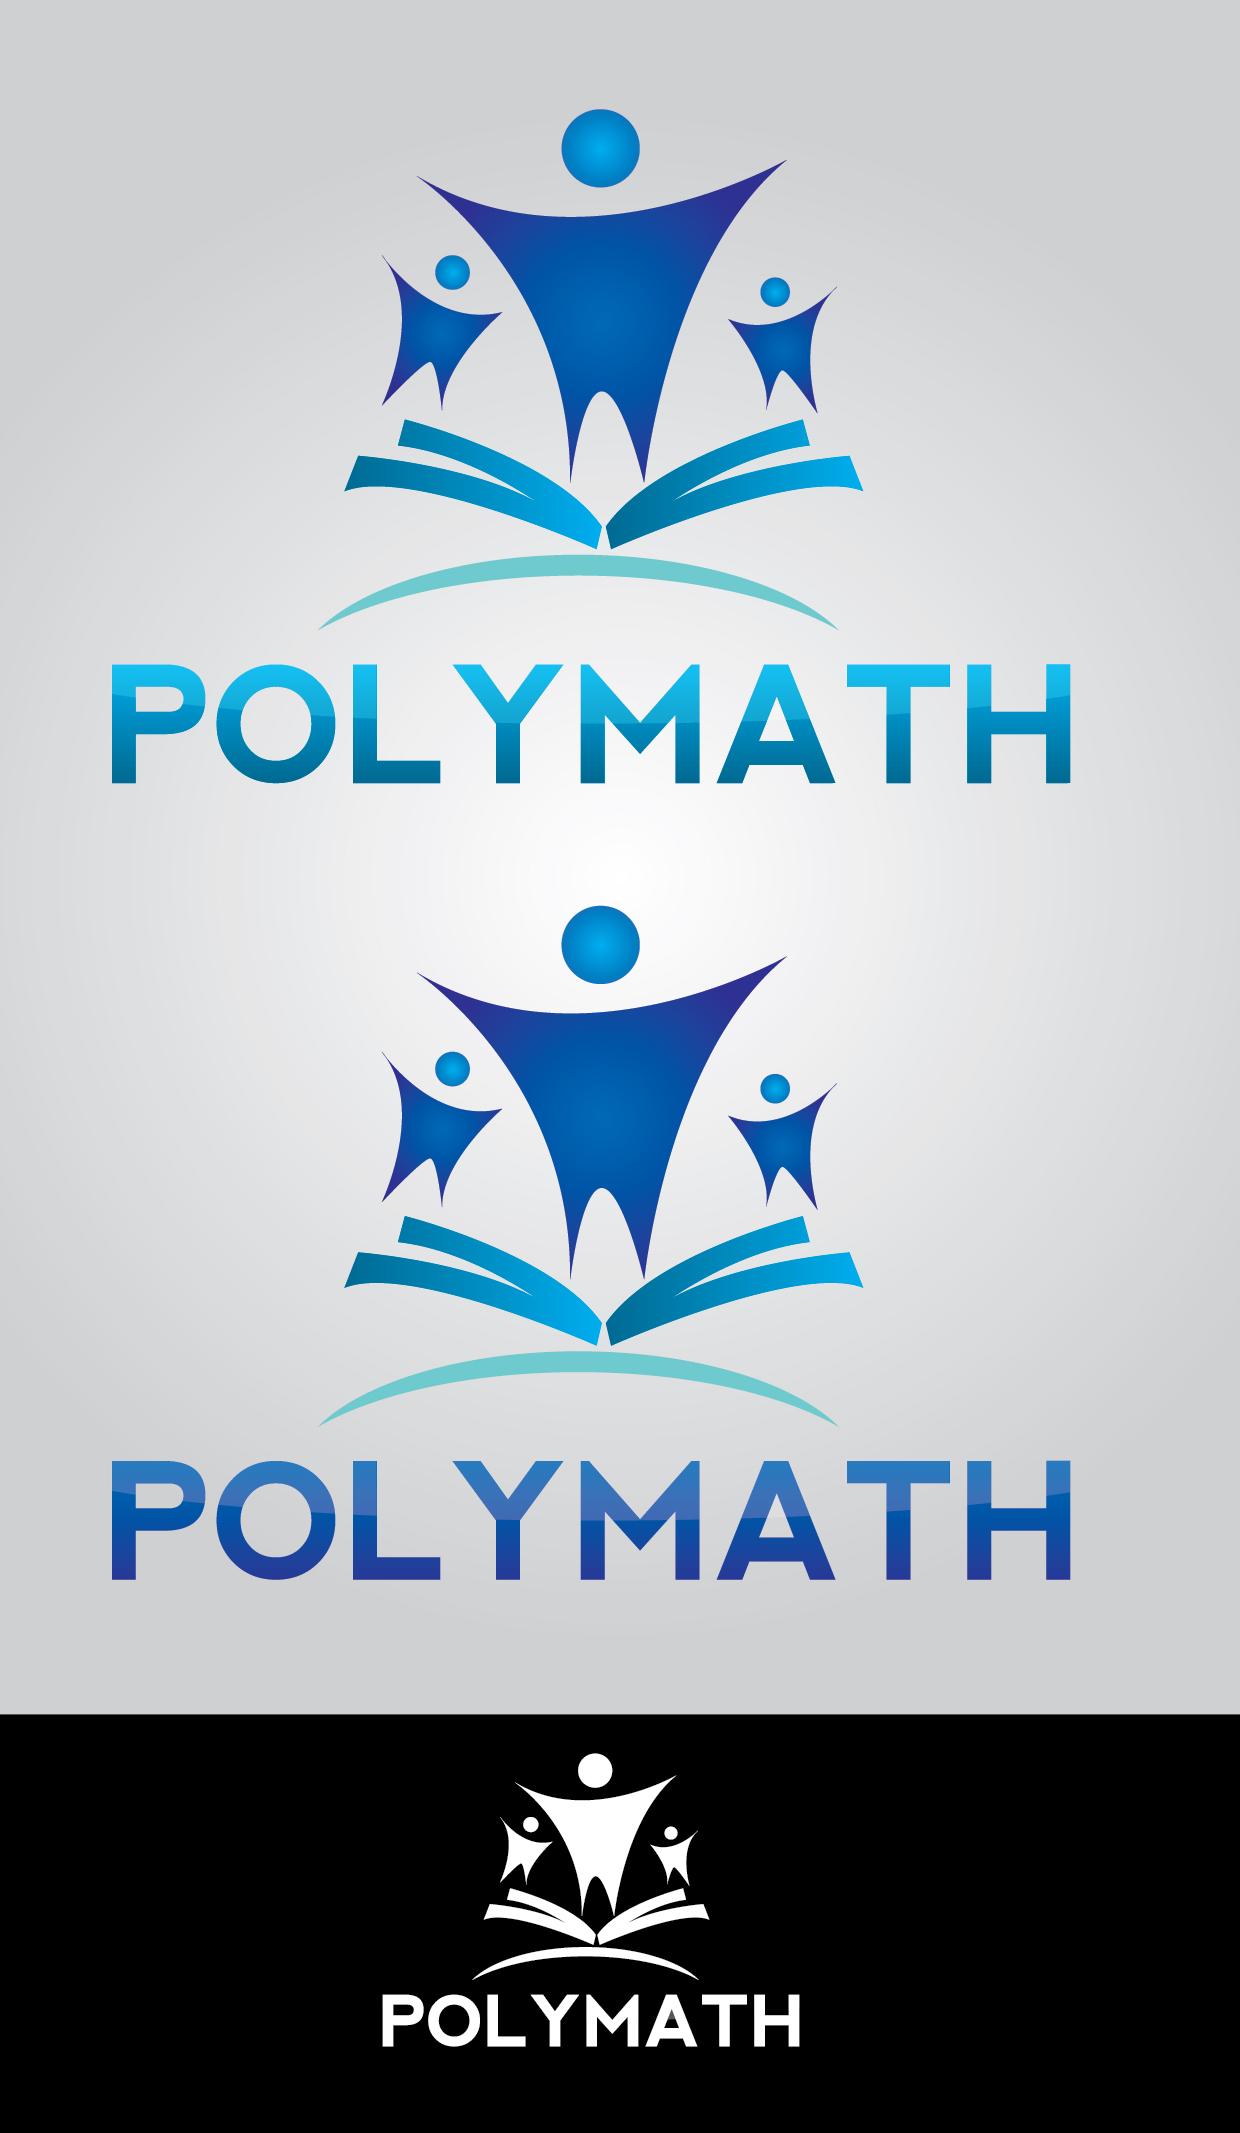 Logo Design by mediaproductionart - Entry No. 8 in the Logo Design Contest Imaginative Logo Design for Polymath.